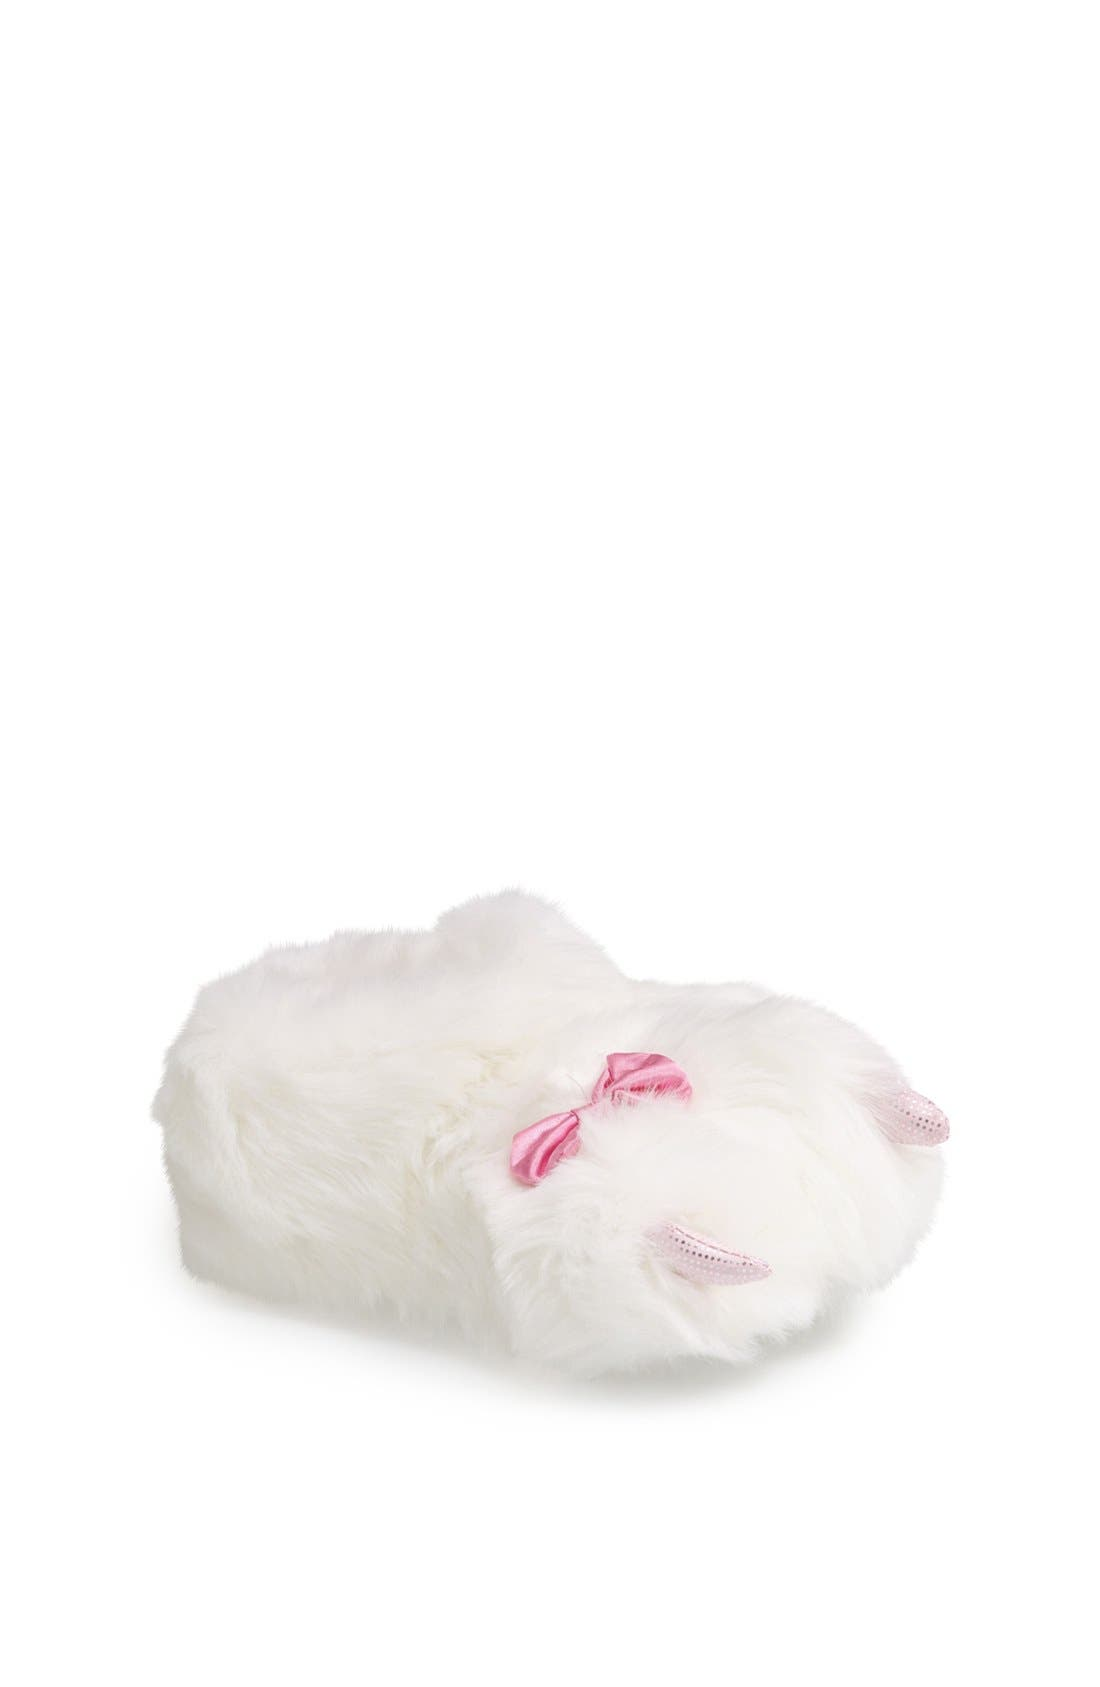 Alternate Image 1 Selected - Stride Rite 'Chloe' Bear Claw Slipper (Toddler Girls & Little Girls)